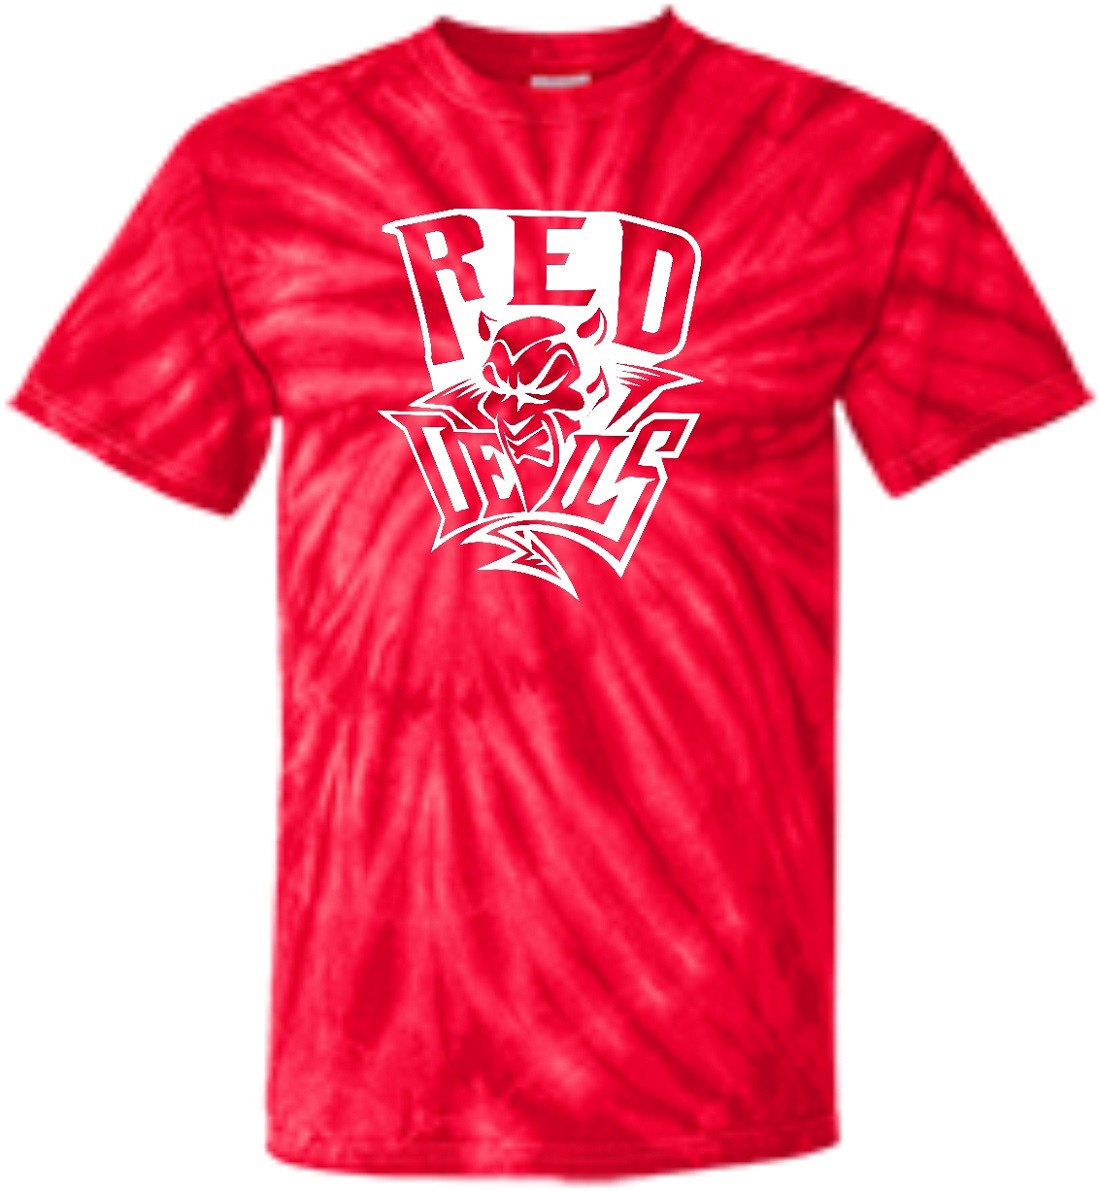 VVS Red Devils 100% Cotton Tye Dye T-Shirts